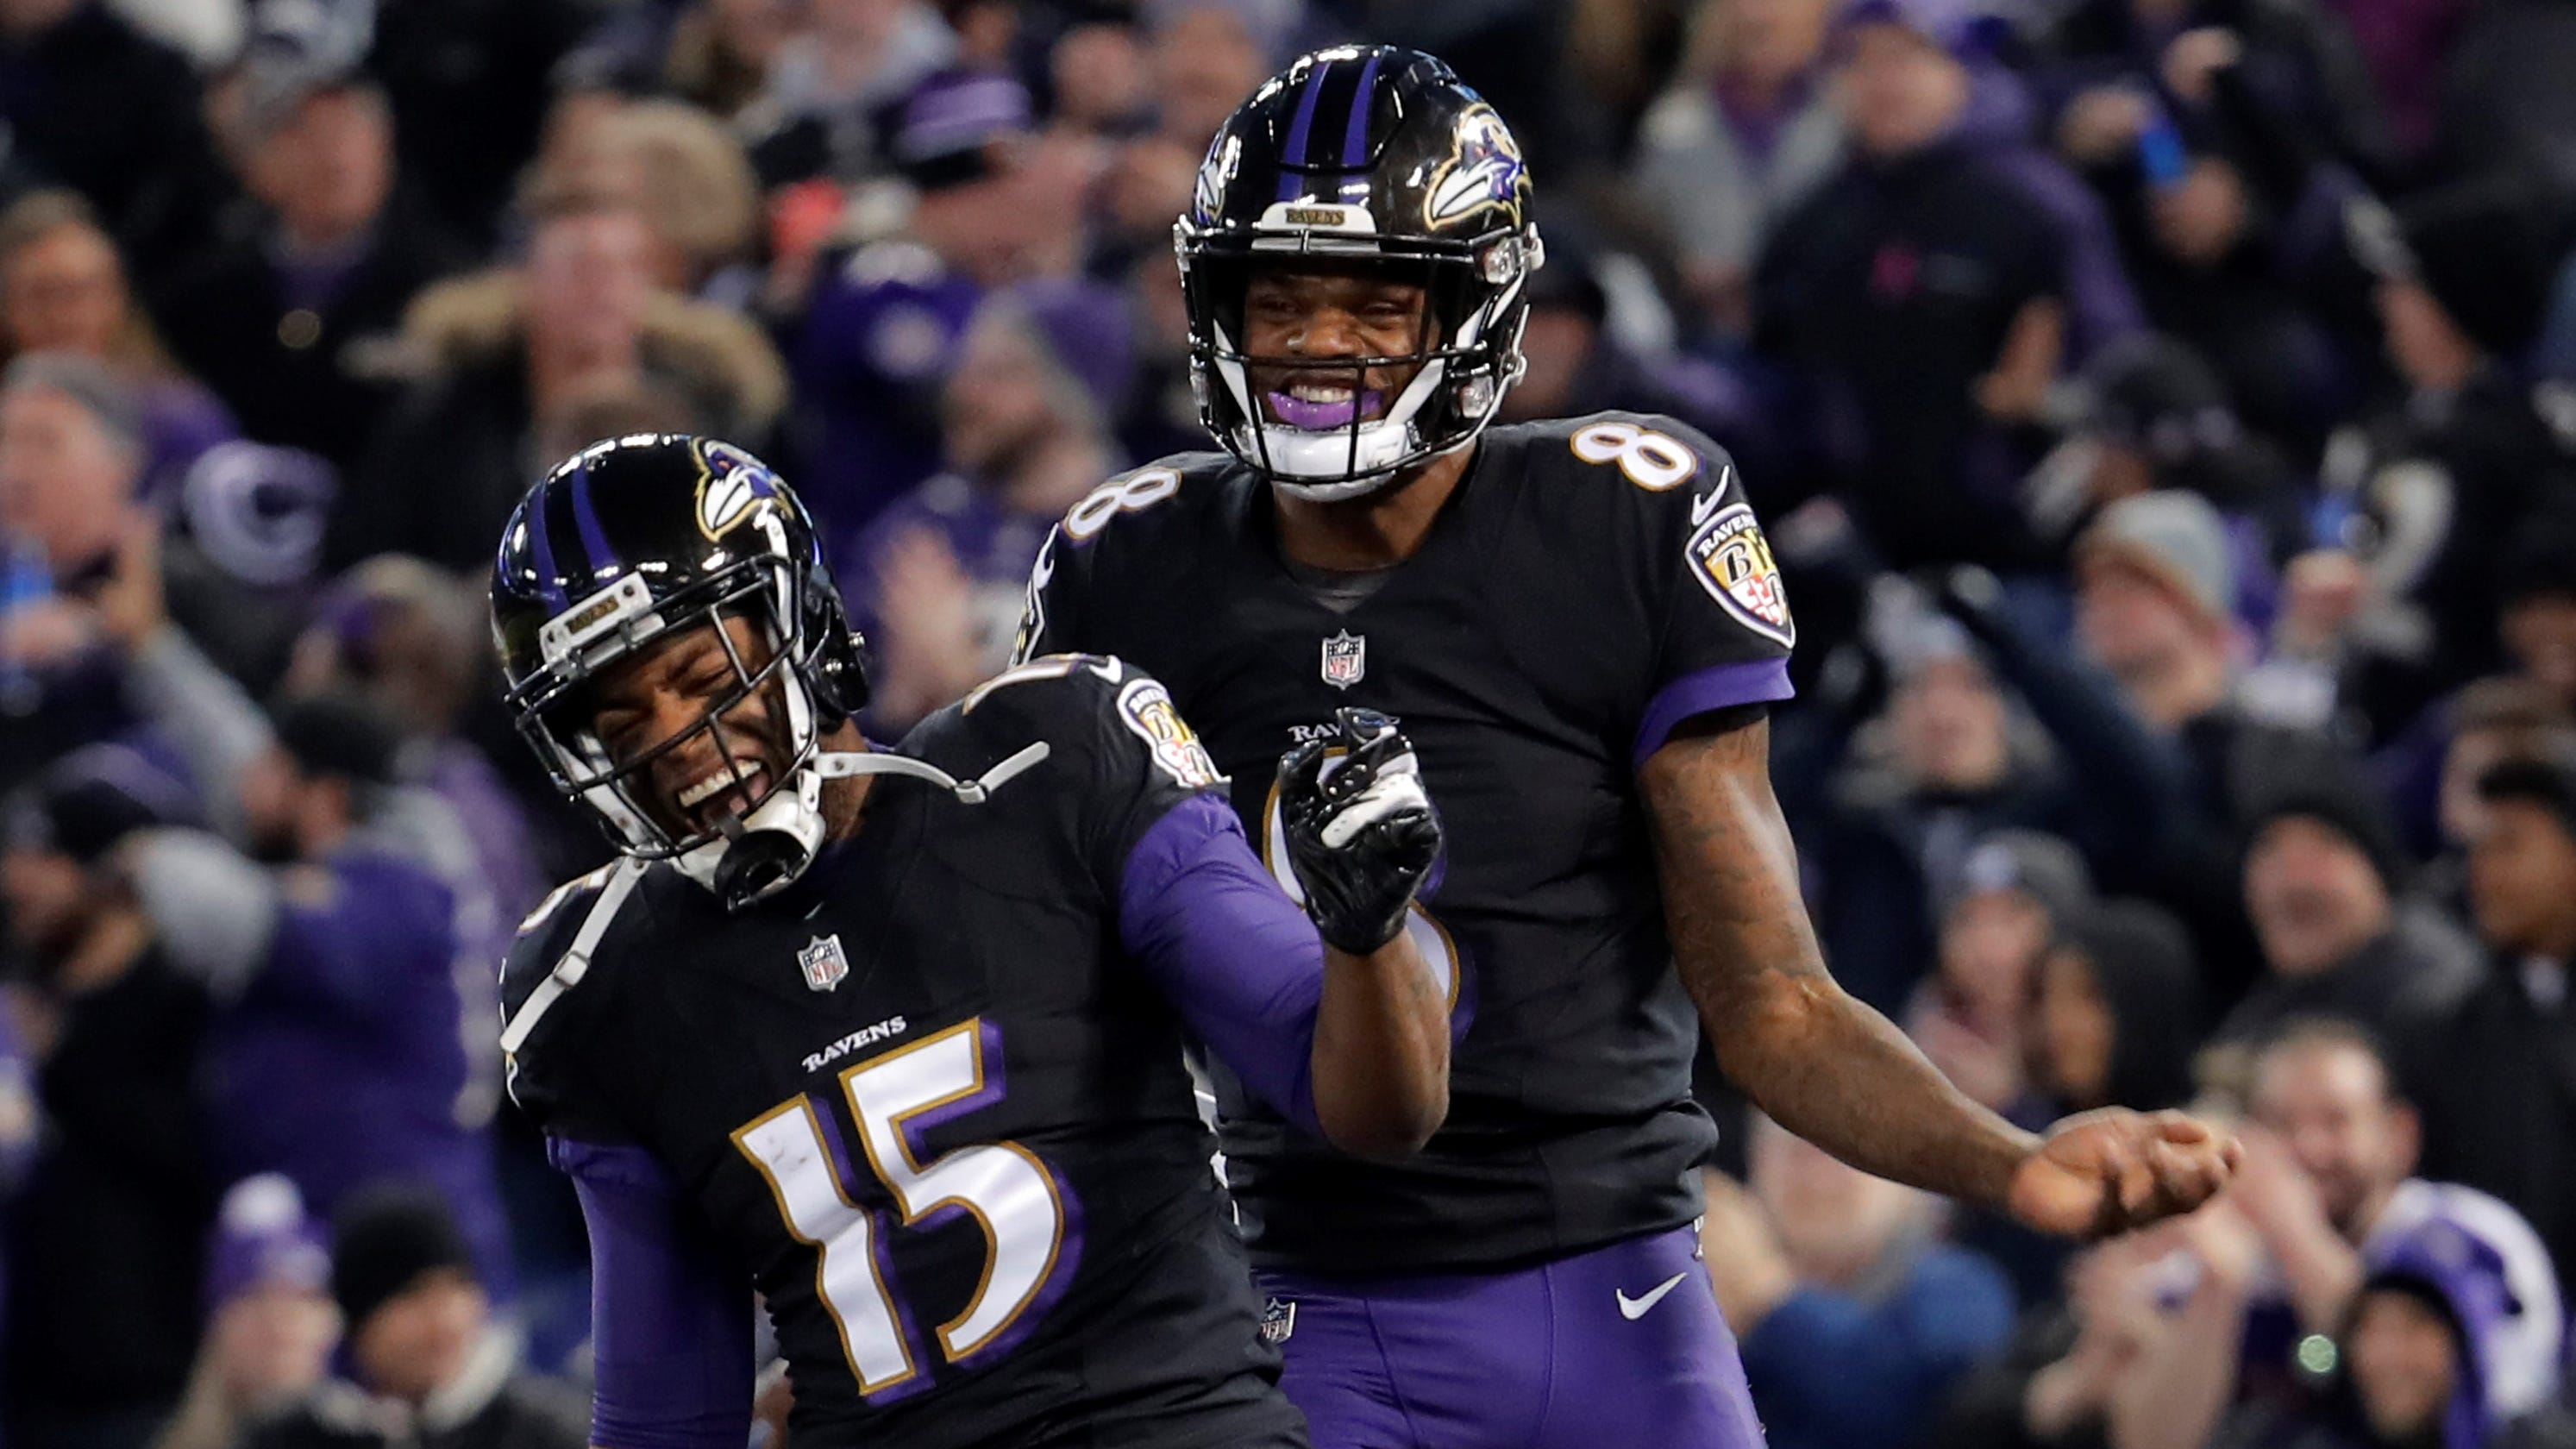 AFC North Power Rankings: Baltimore Ravens fly high in Week 3